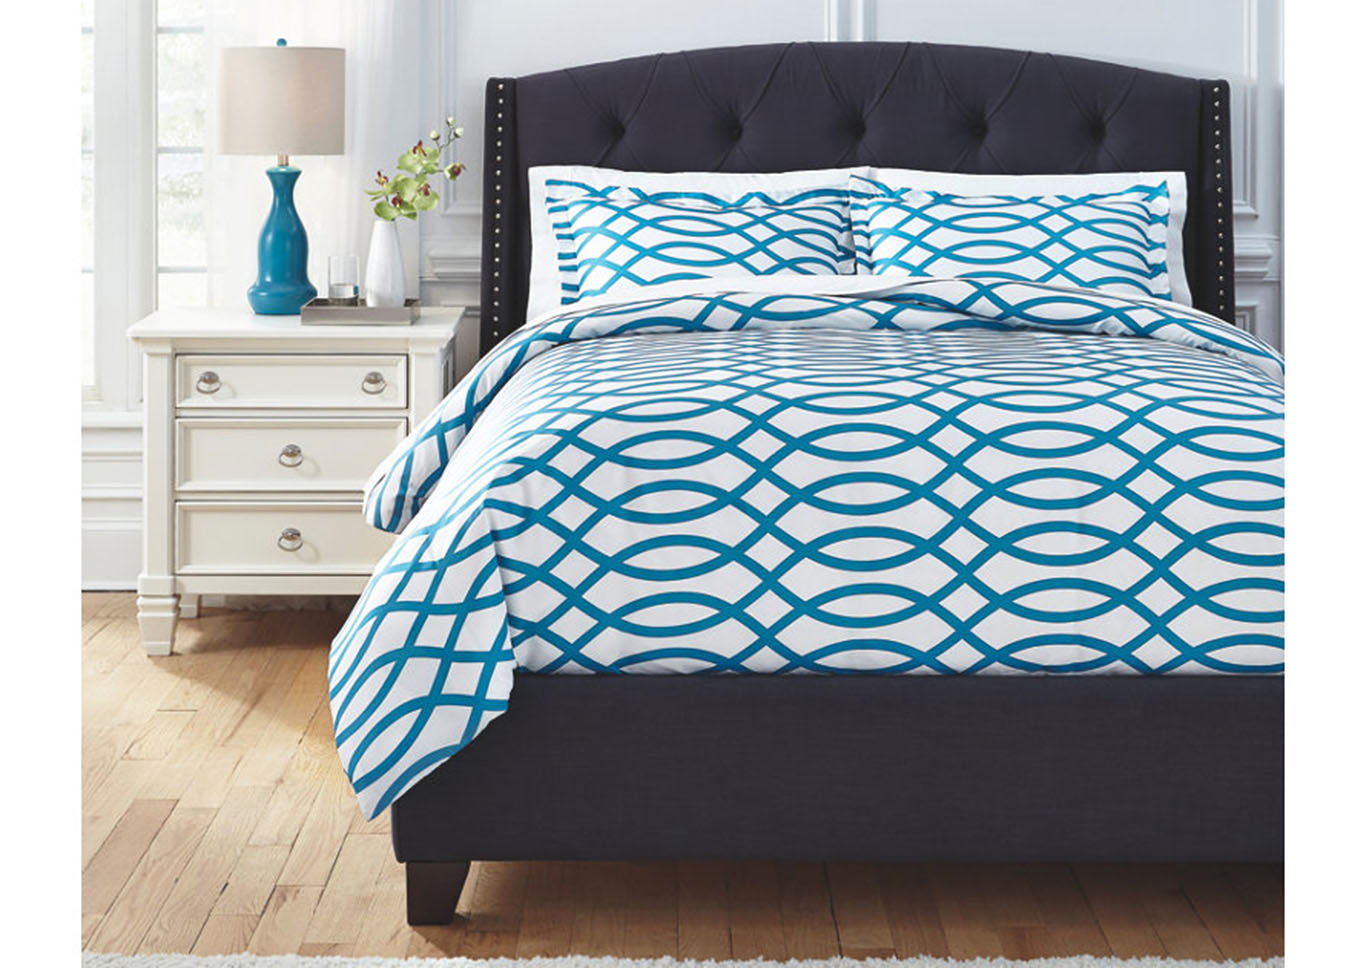 Leander Turquoise Queen Duvet Cover Set,Signature Design By Ashley